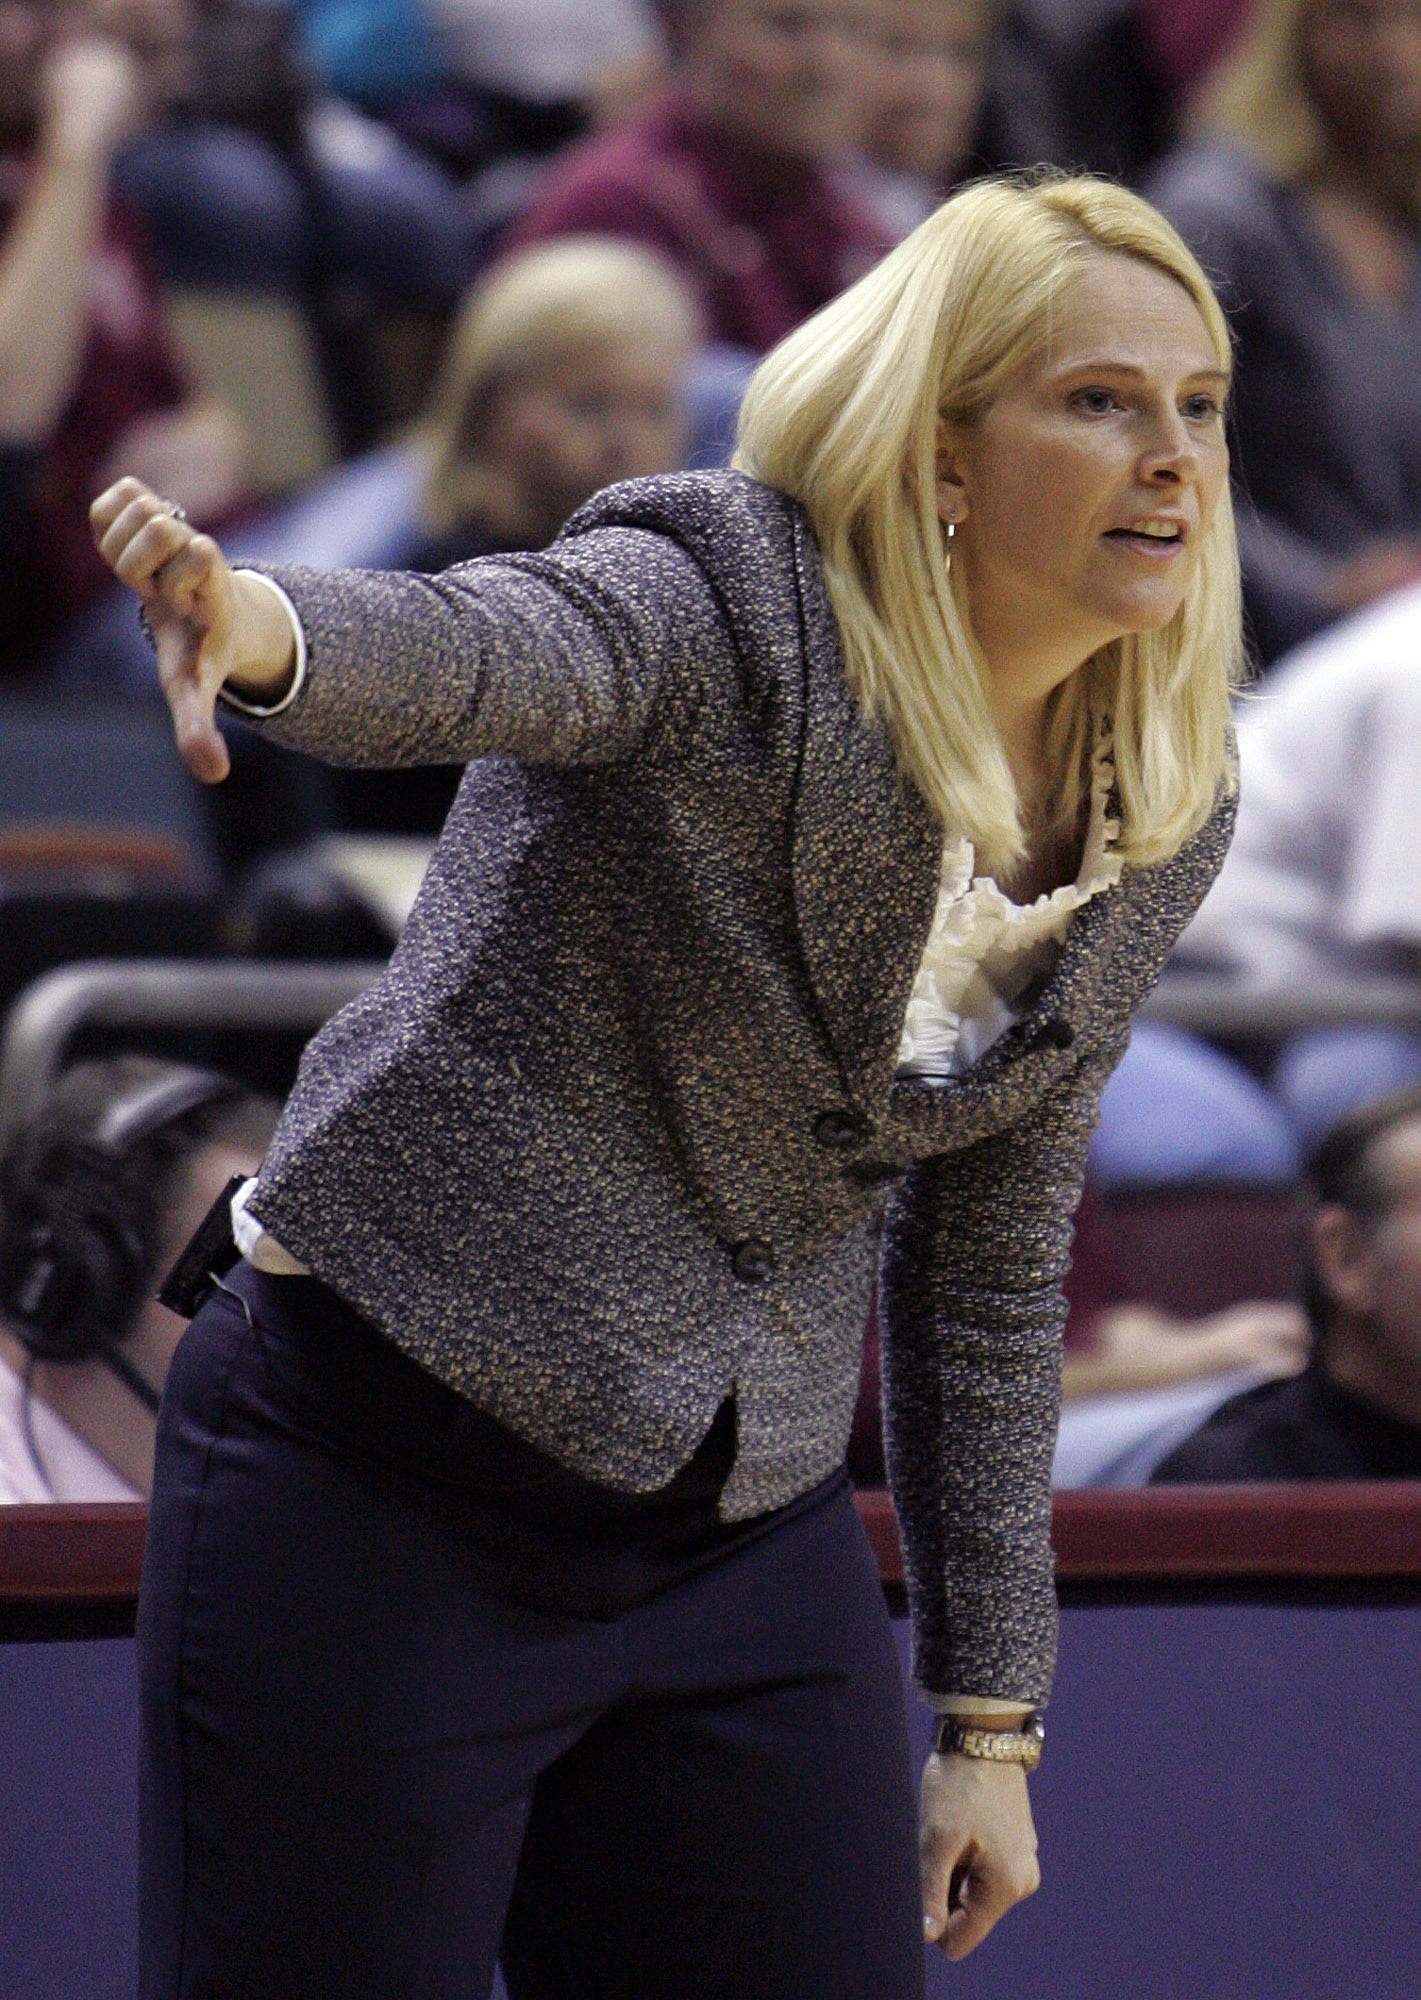 Maryland head coach Brenda Freese gestures to her team in the second half of an NCAA college basketball game against Maryland on Monday, Jan. 2, 2012, in Tallahassee, Fla. Maryland won 91-70. (AP Photo/Steve Cannon)